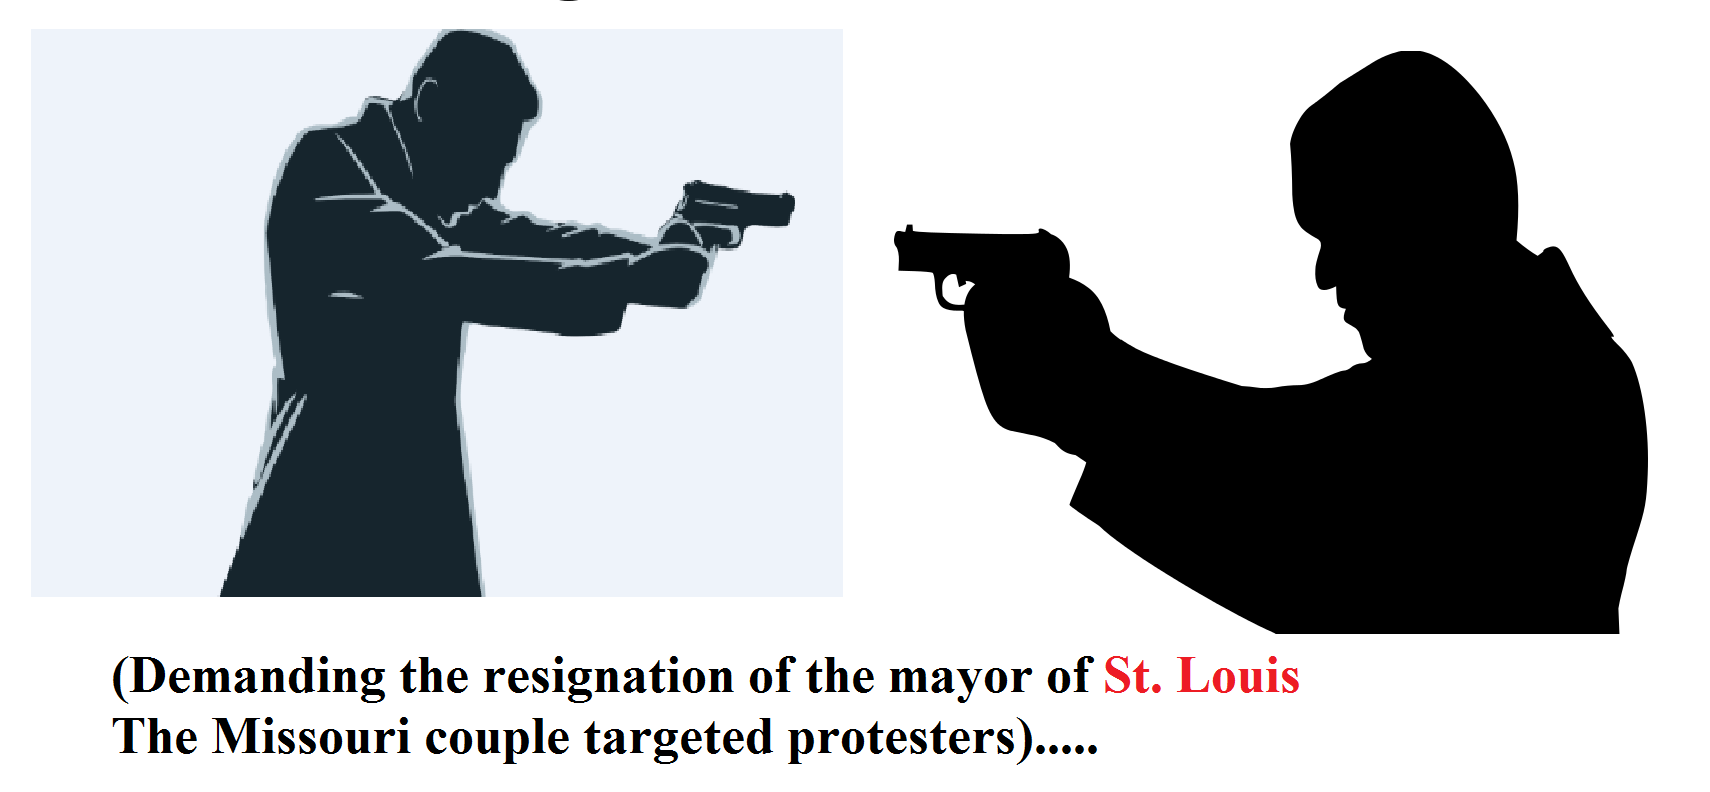 Demanding the resignation of the mayor of St. Louis